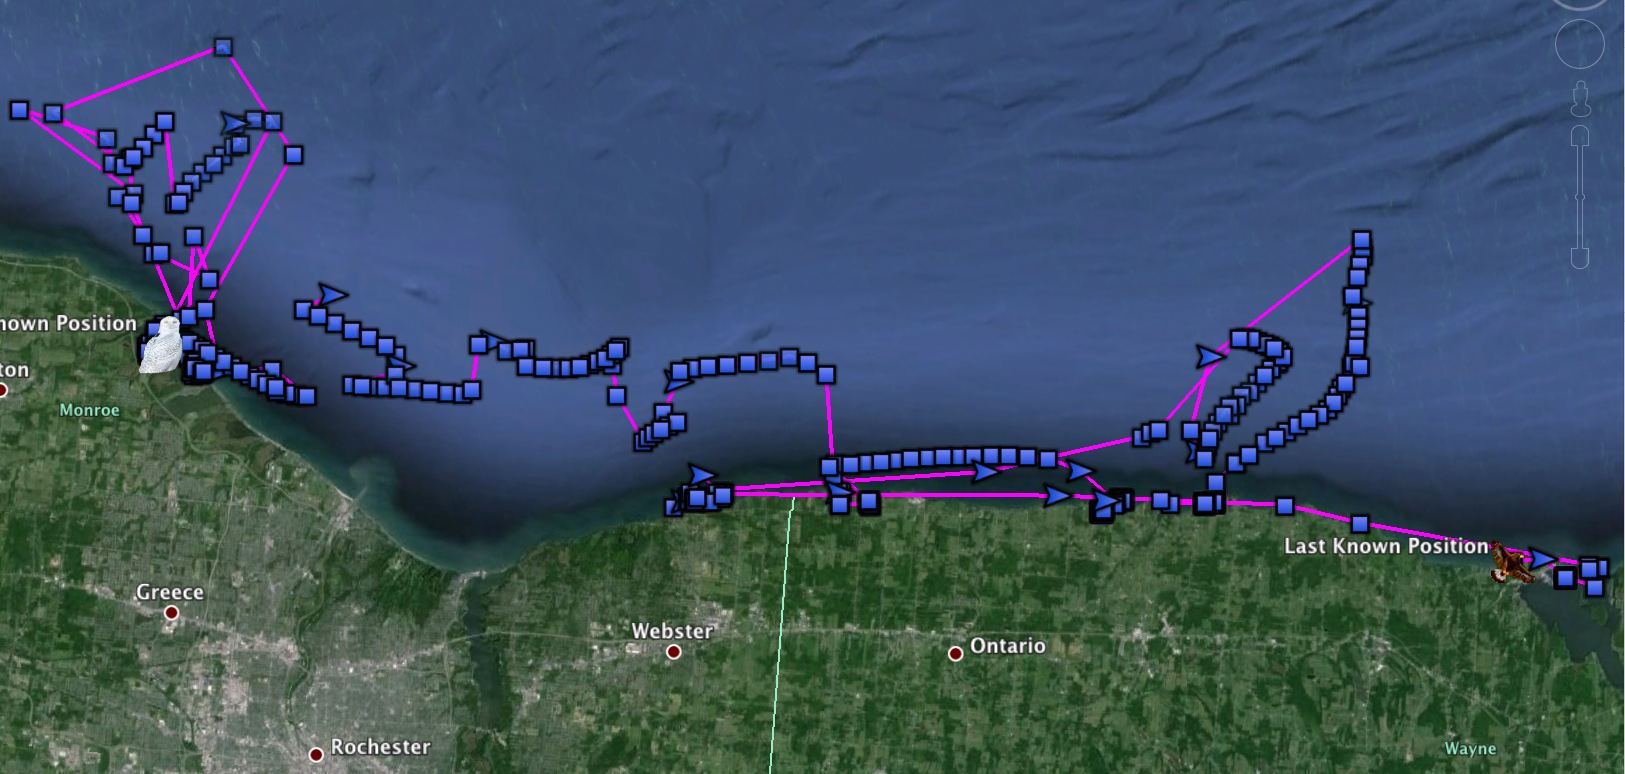 Braddock (left) and Cranberry's movements, often riding the ice margin that hangs five ti seven miles offshore in Lake Ontario. (©Project SNOWstorm)